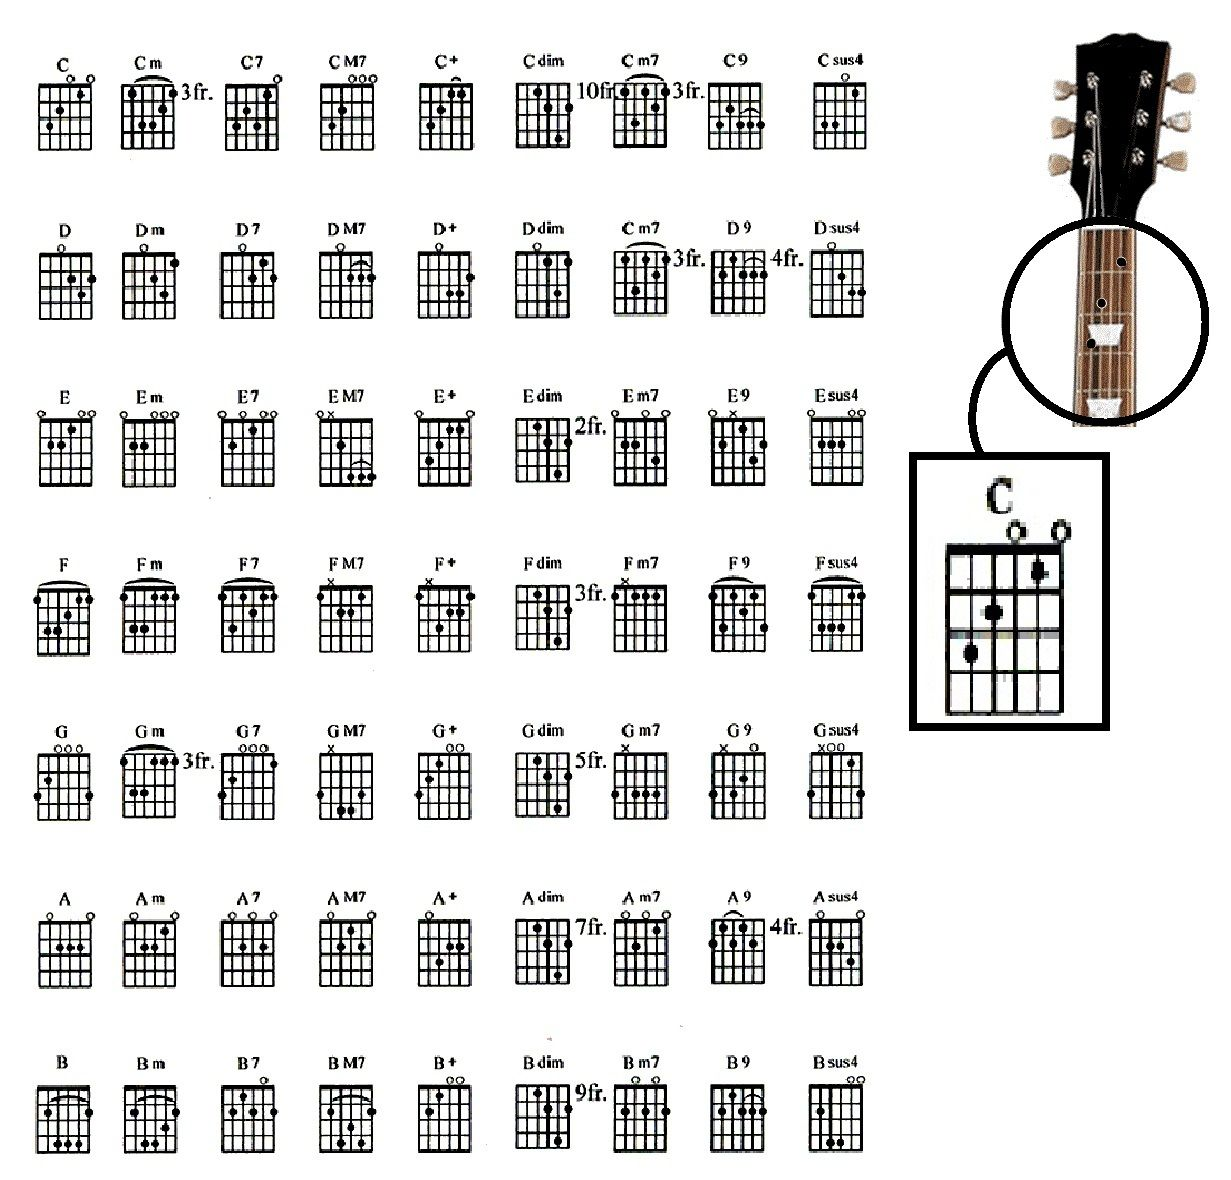 Hey Check This Site Out For Learning Guitar, Amazing Stuff: Http: